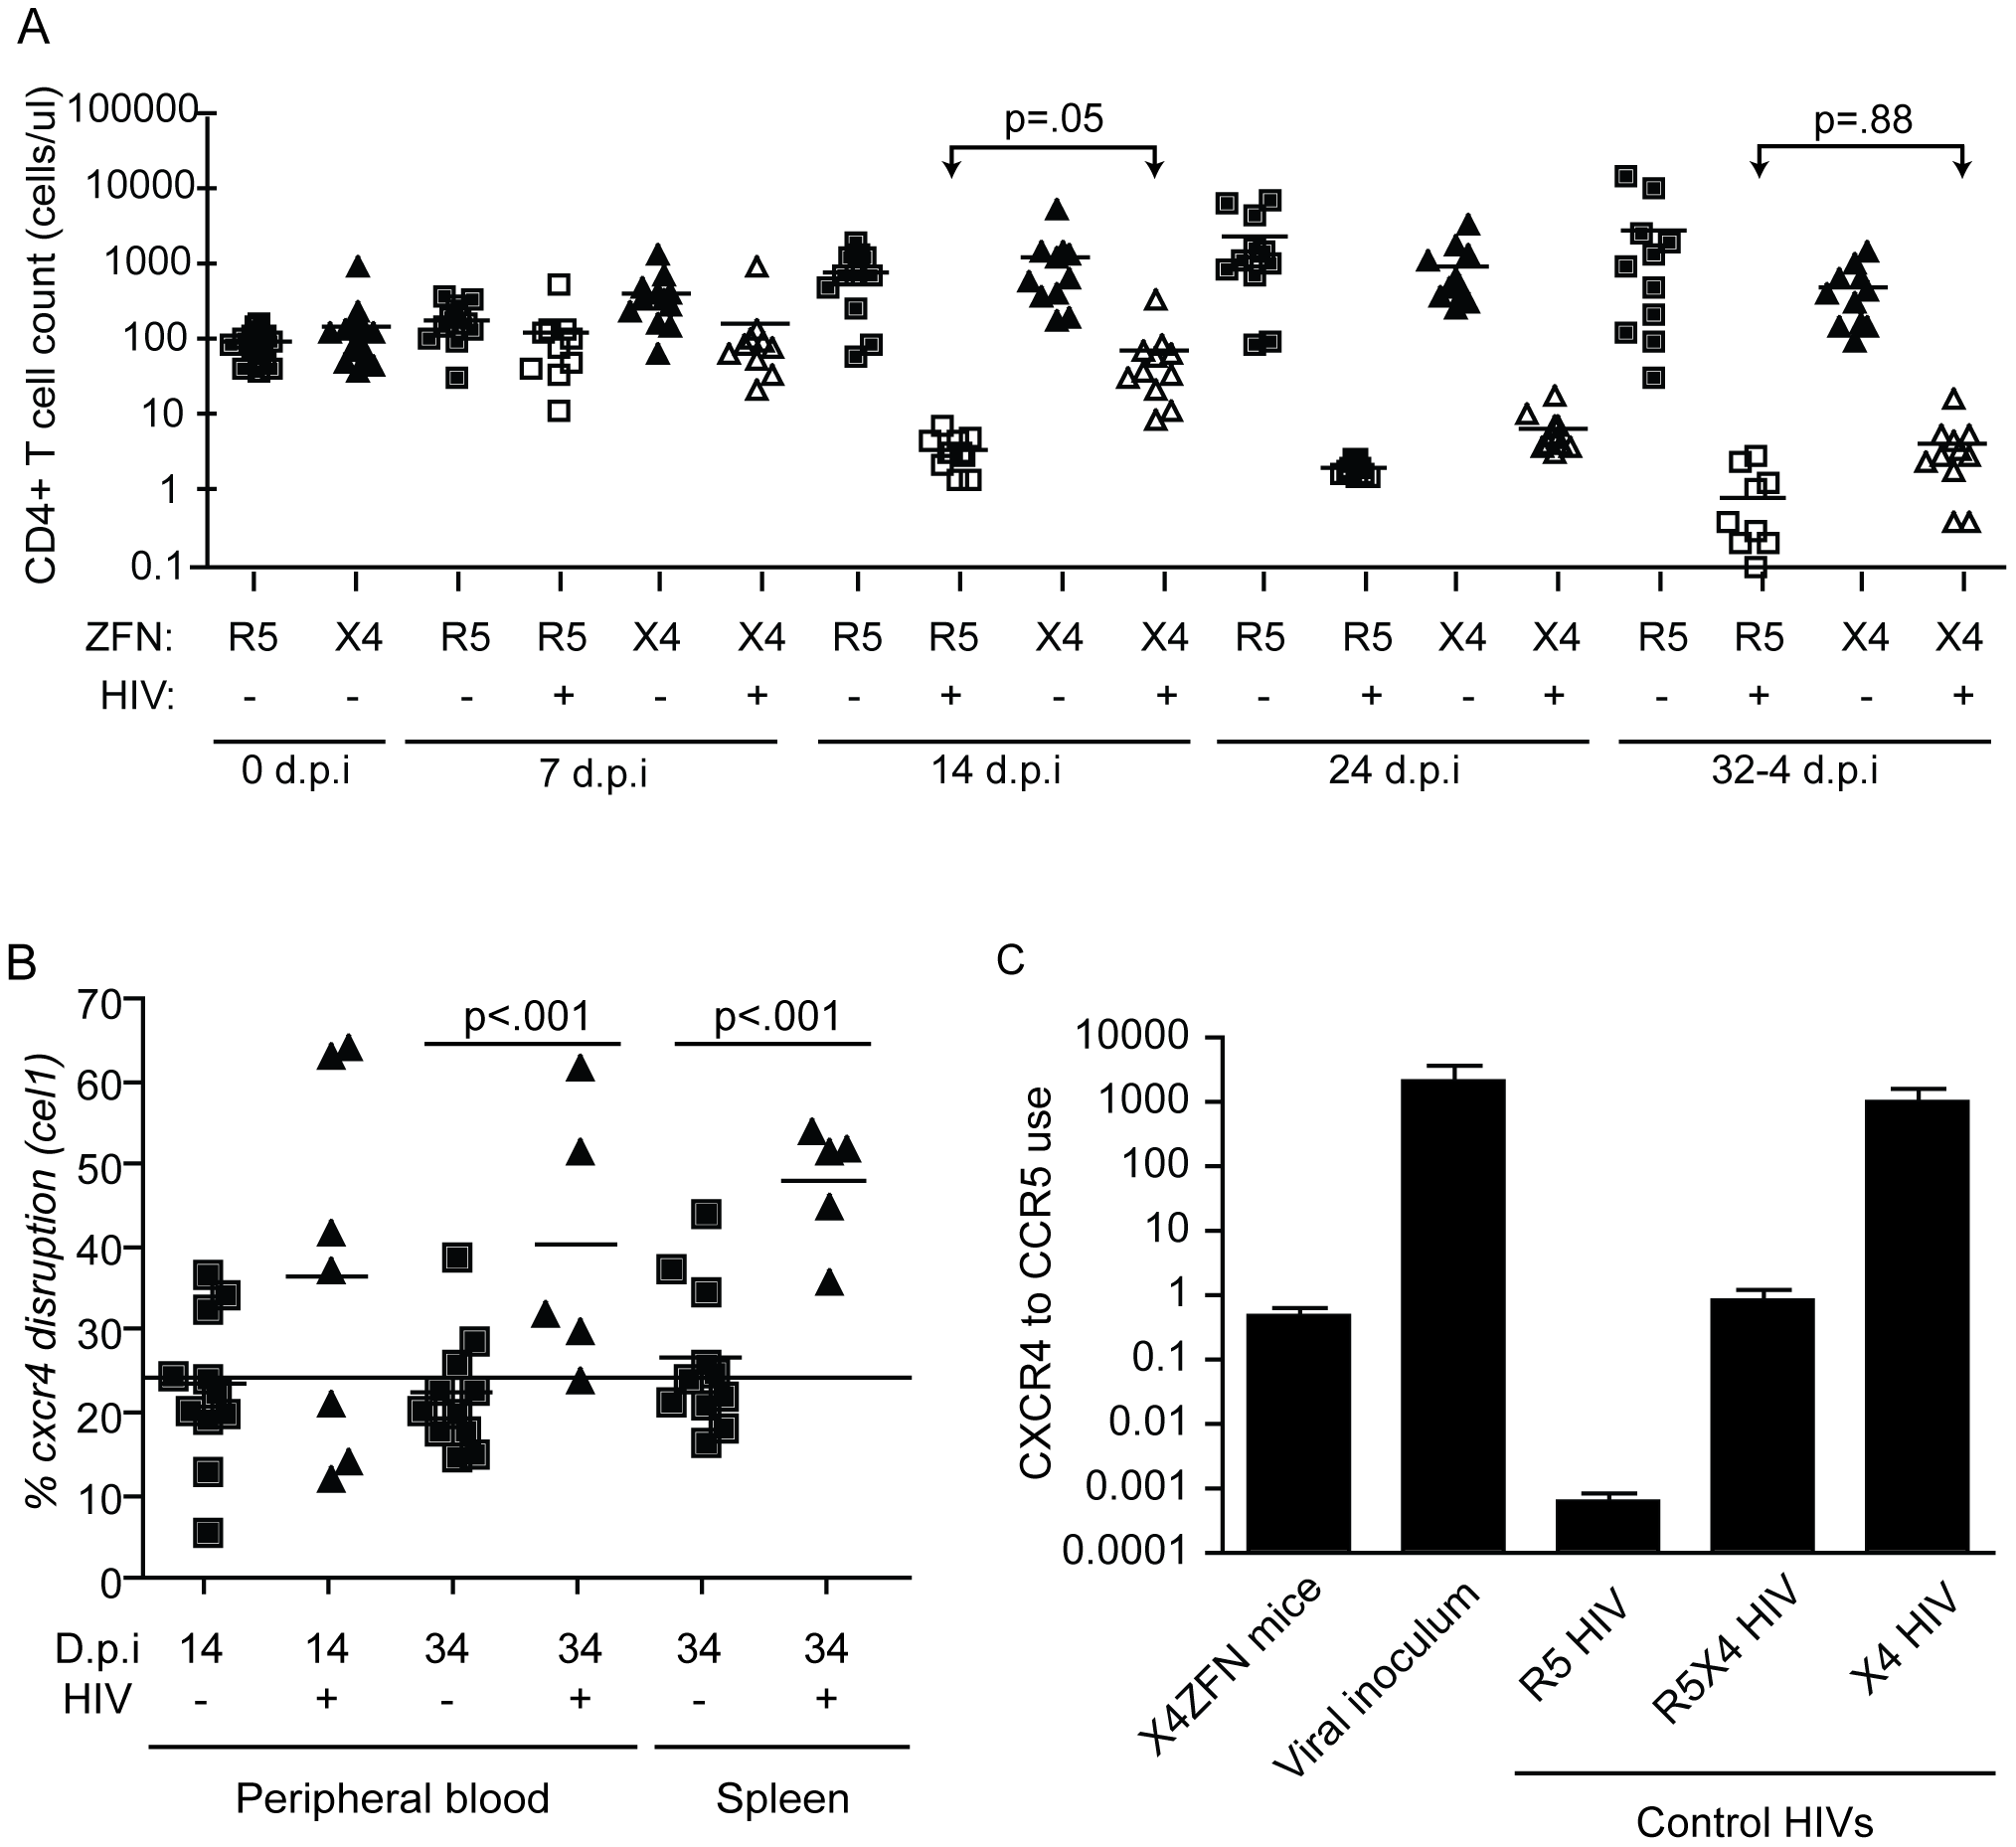 Treatment with X4-ZFNs confers partial protection to HIV-1 in humanized mice <i>in vivo</i>.